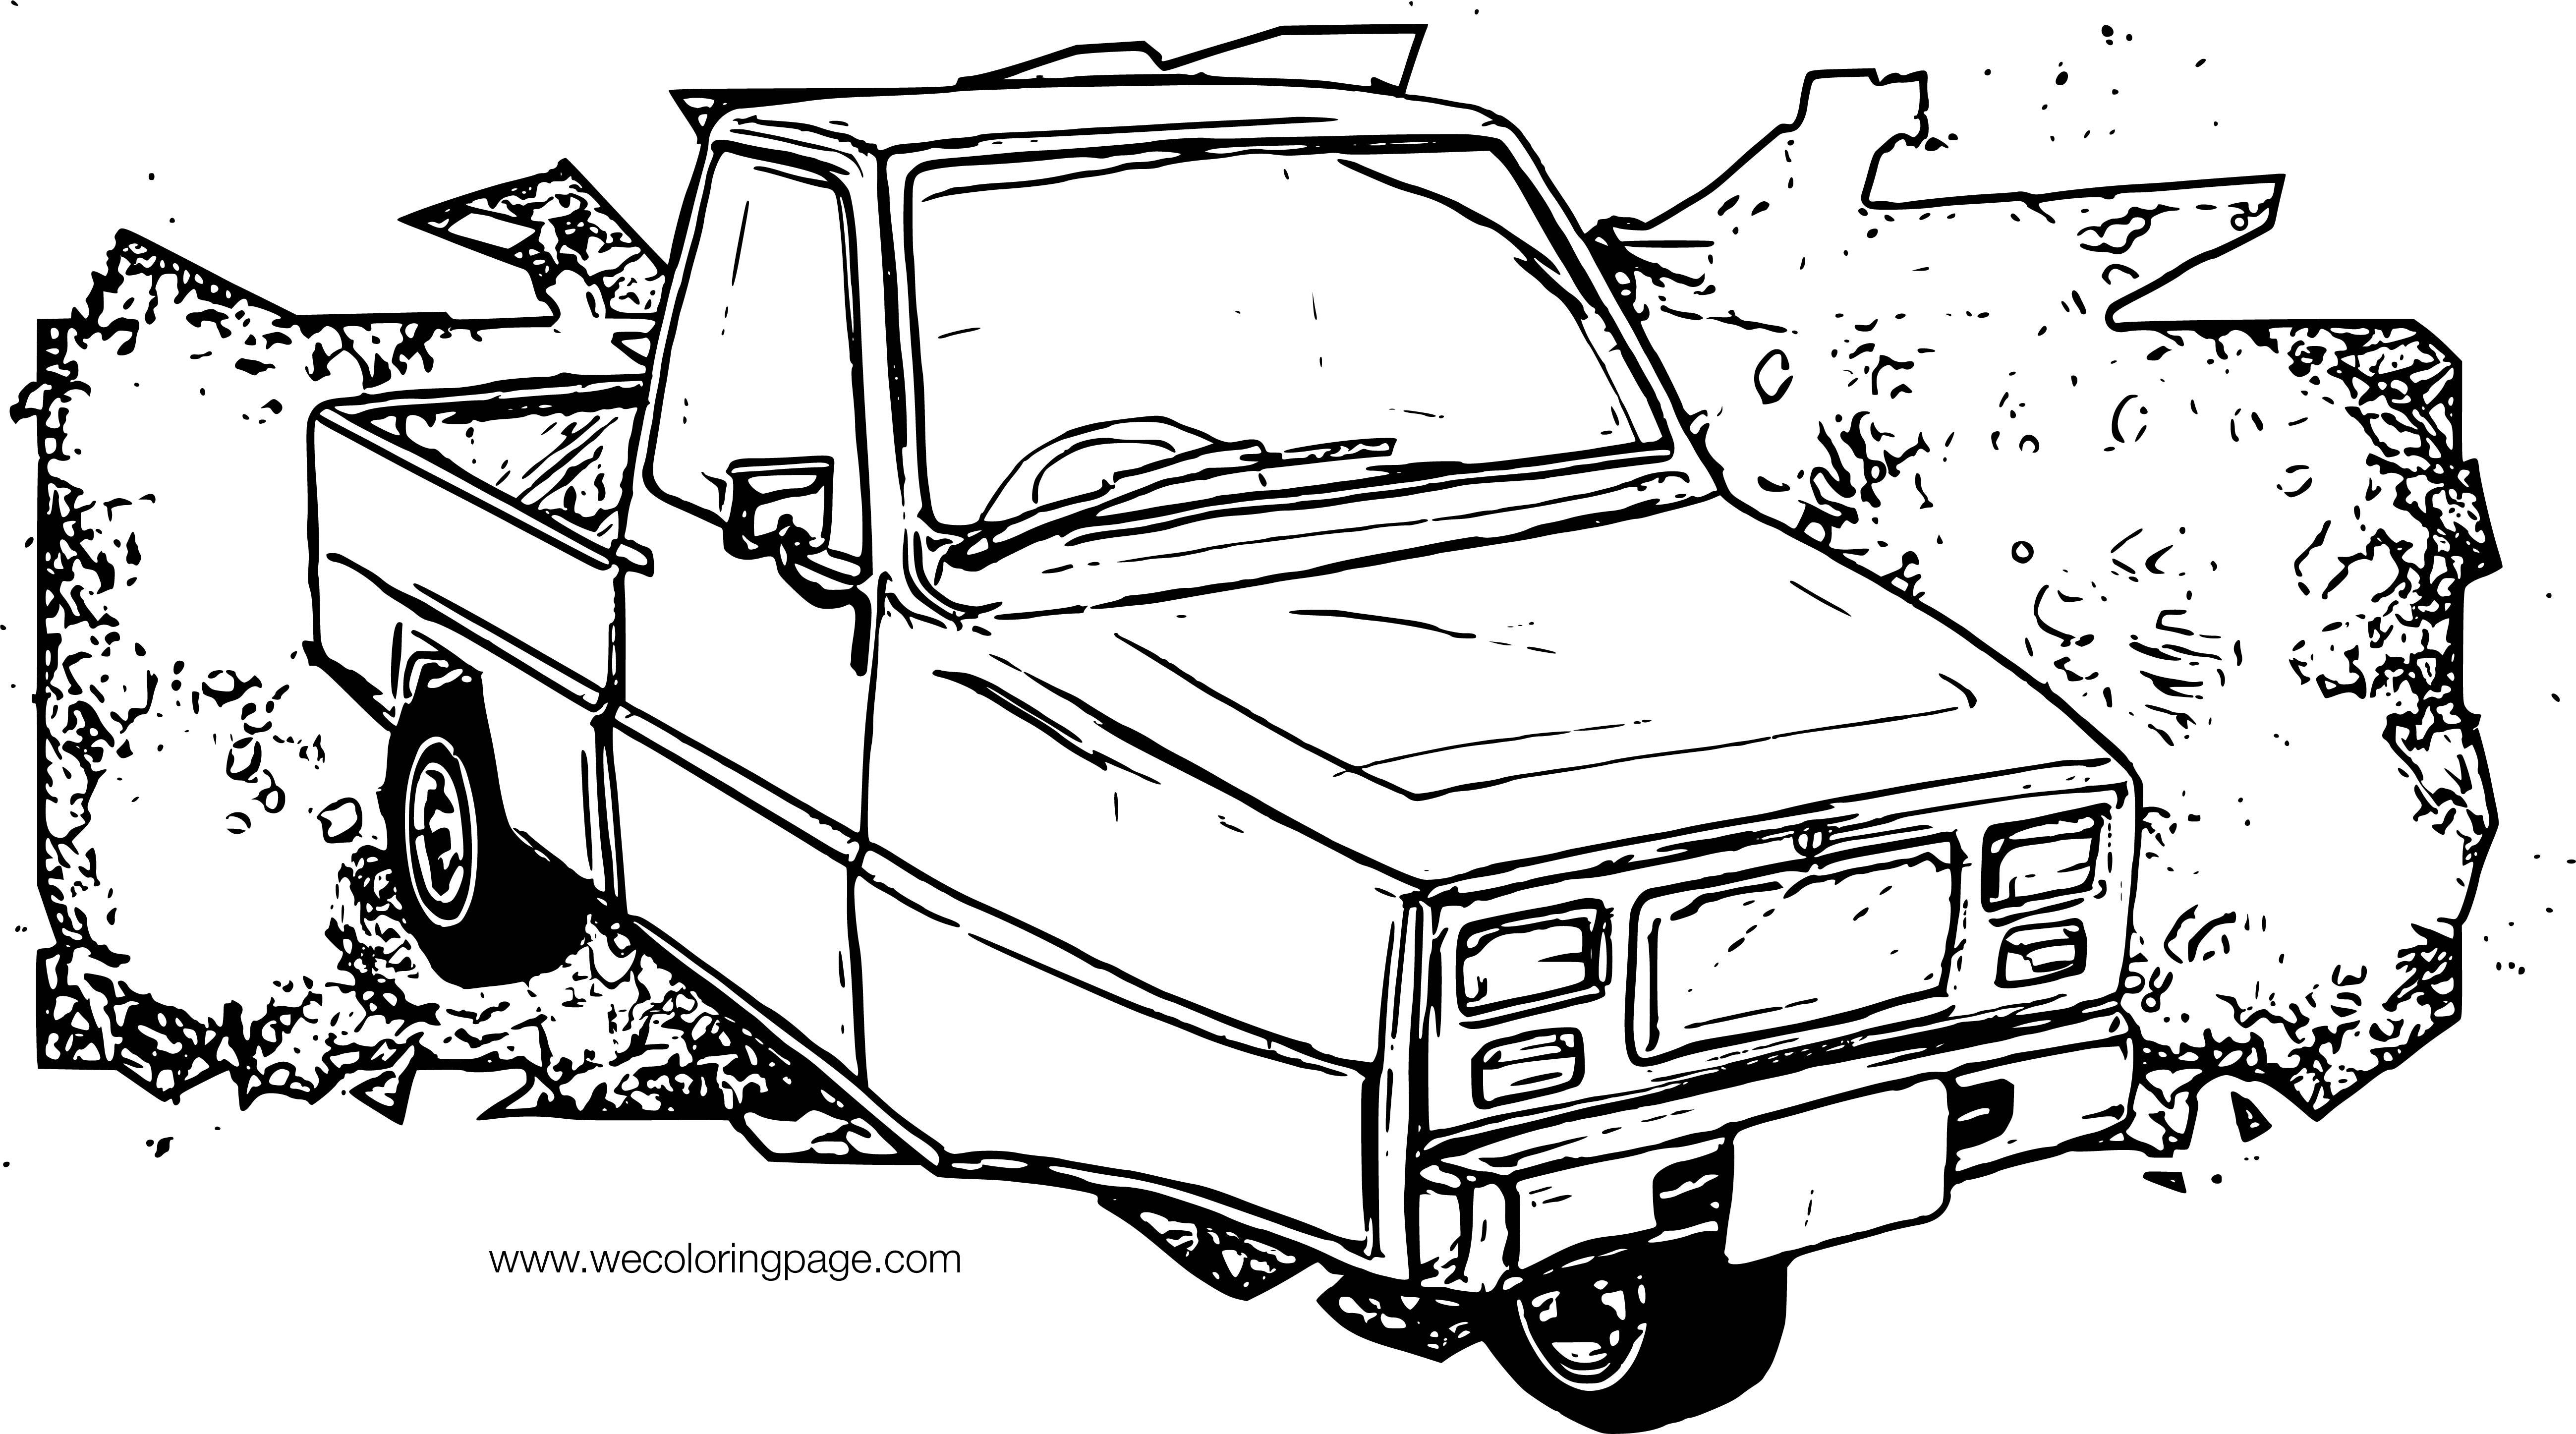 Ibishu Pigeon Truck Car Coloring Page